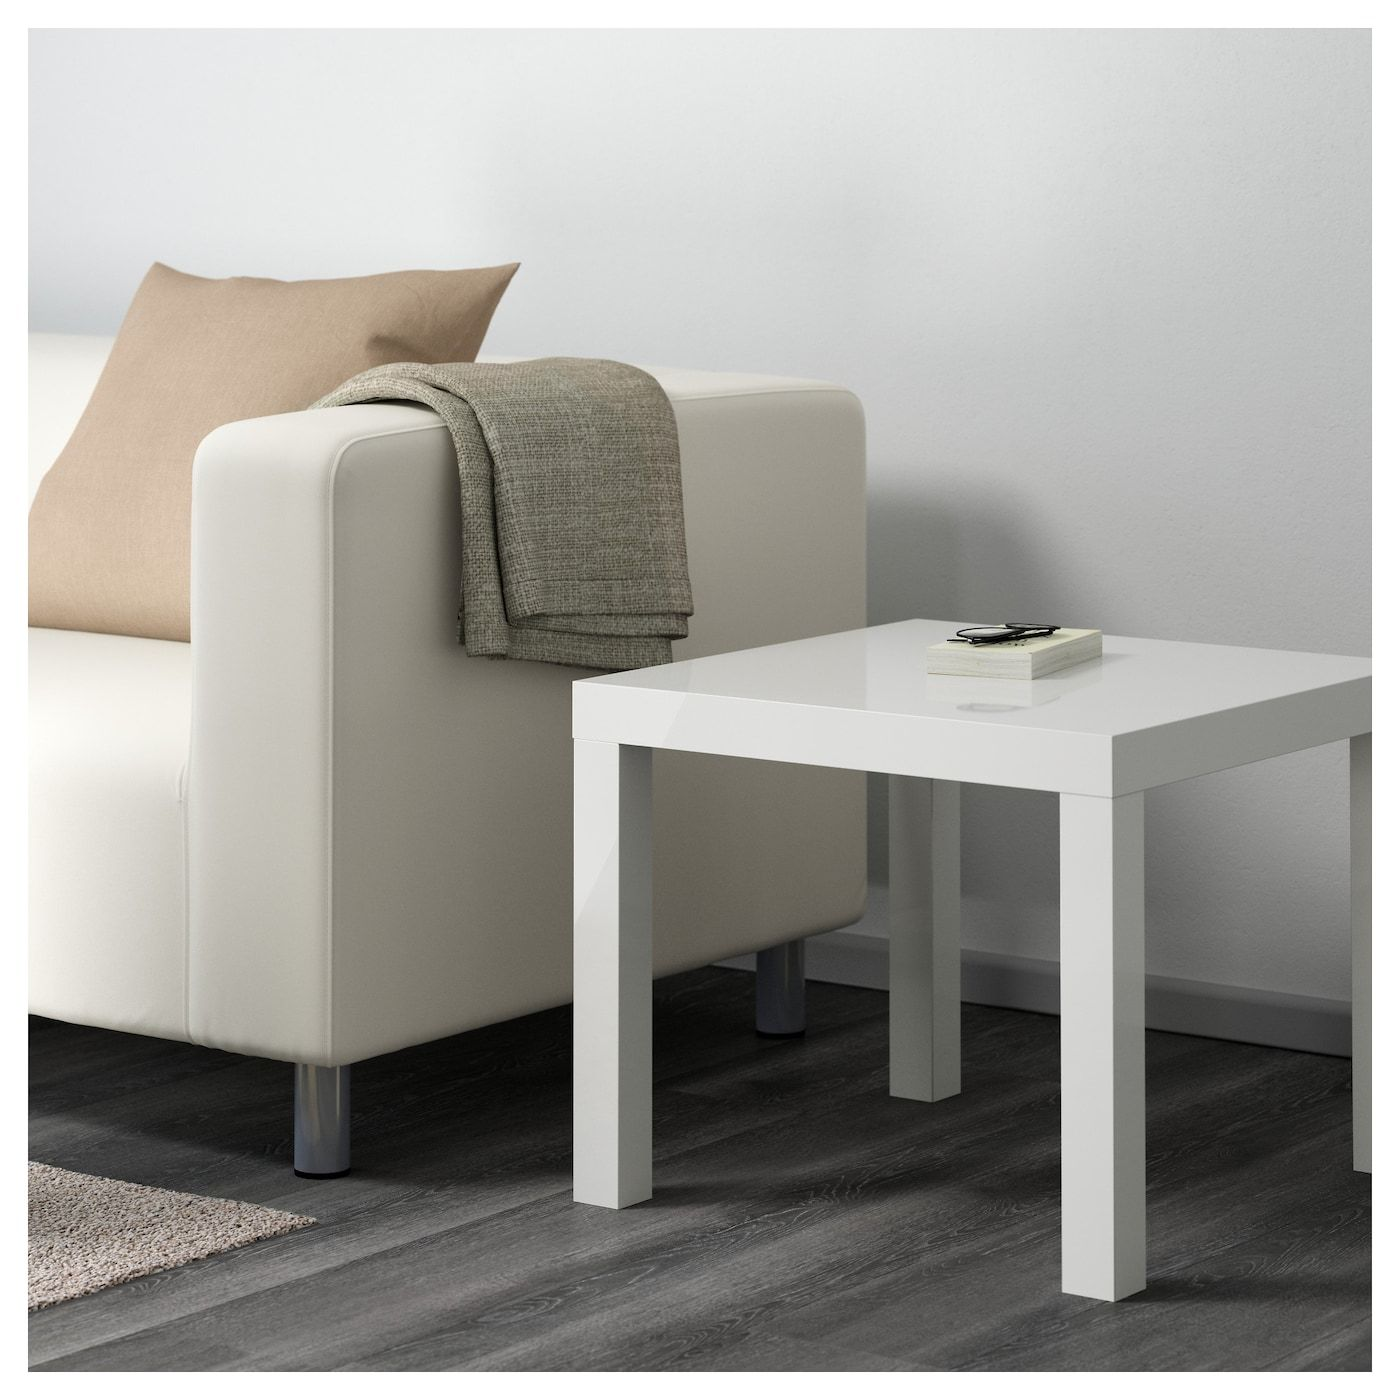 """LACK Side table high gloss white 21 5/8x21 5/8 """" (With"""